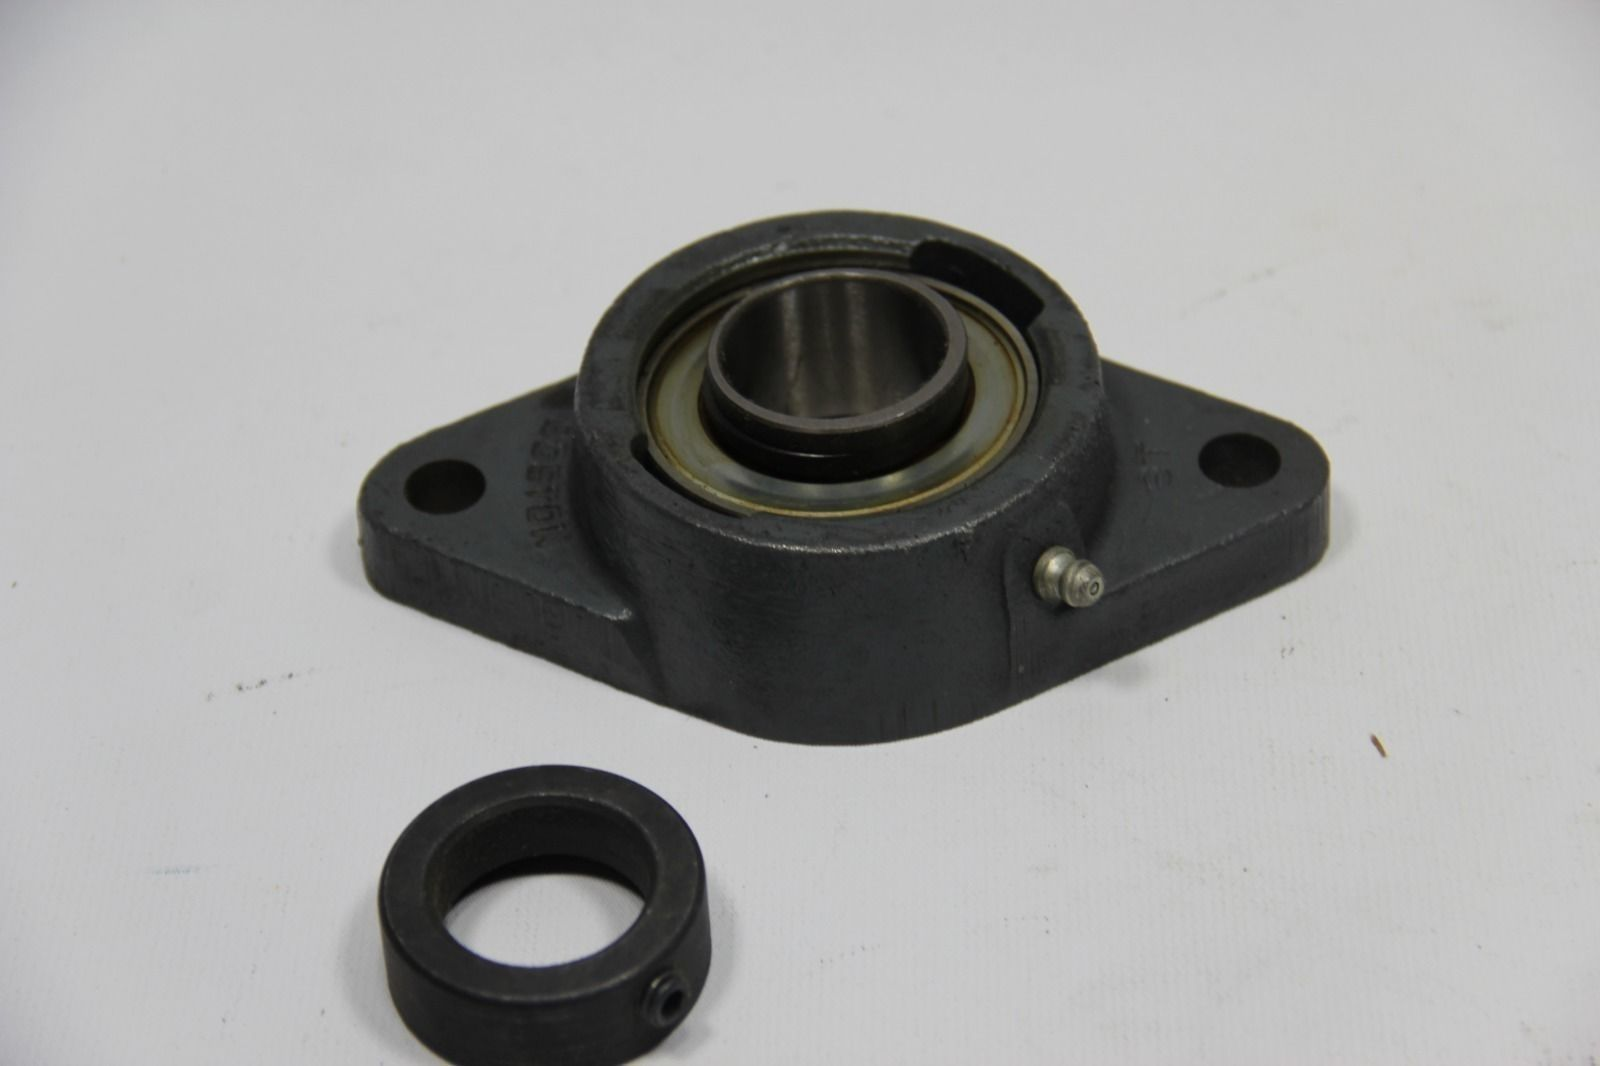 "Boston Gear Flange Bearing, 2 Bolt Hole, 1-1/4"" Bore ..."